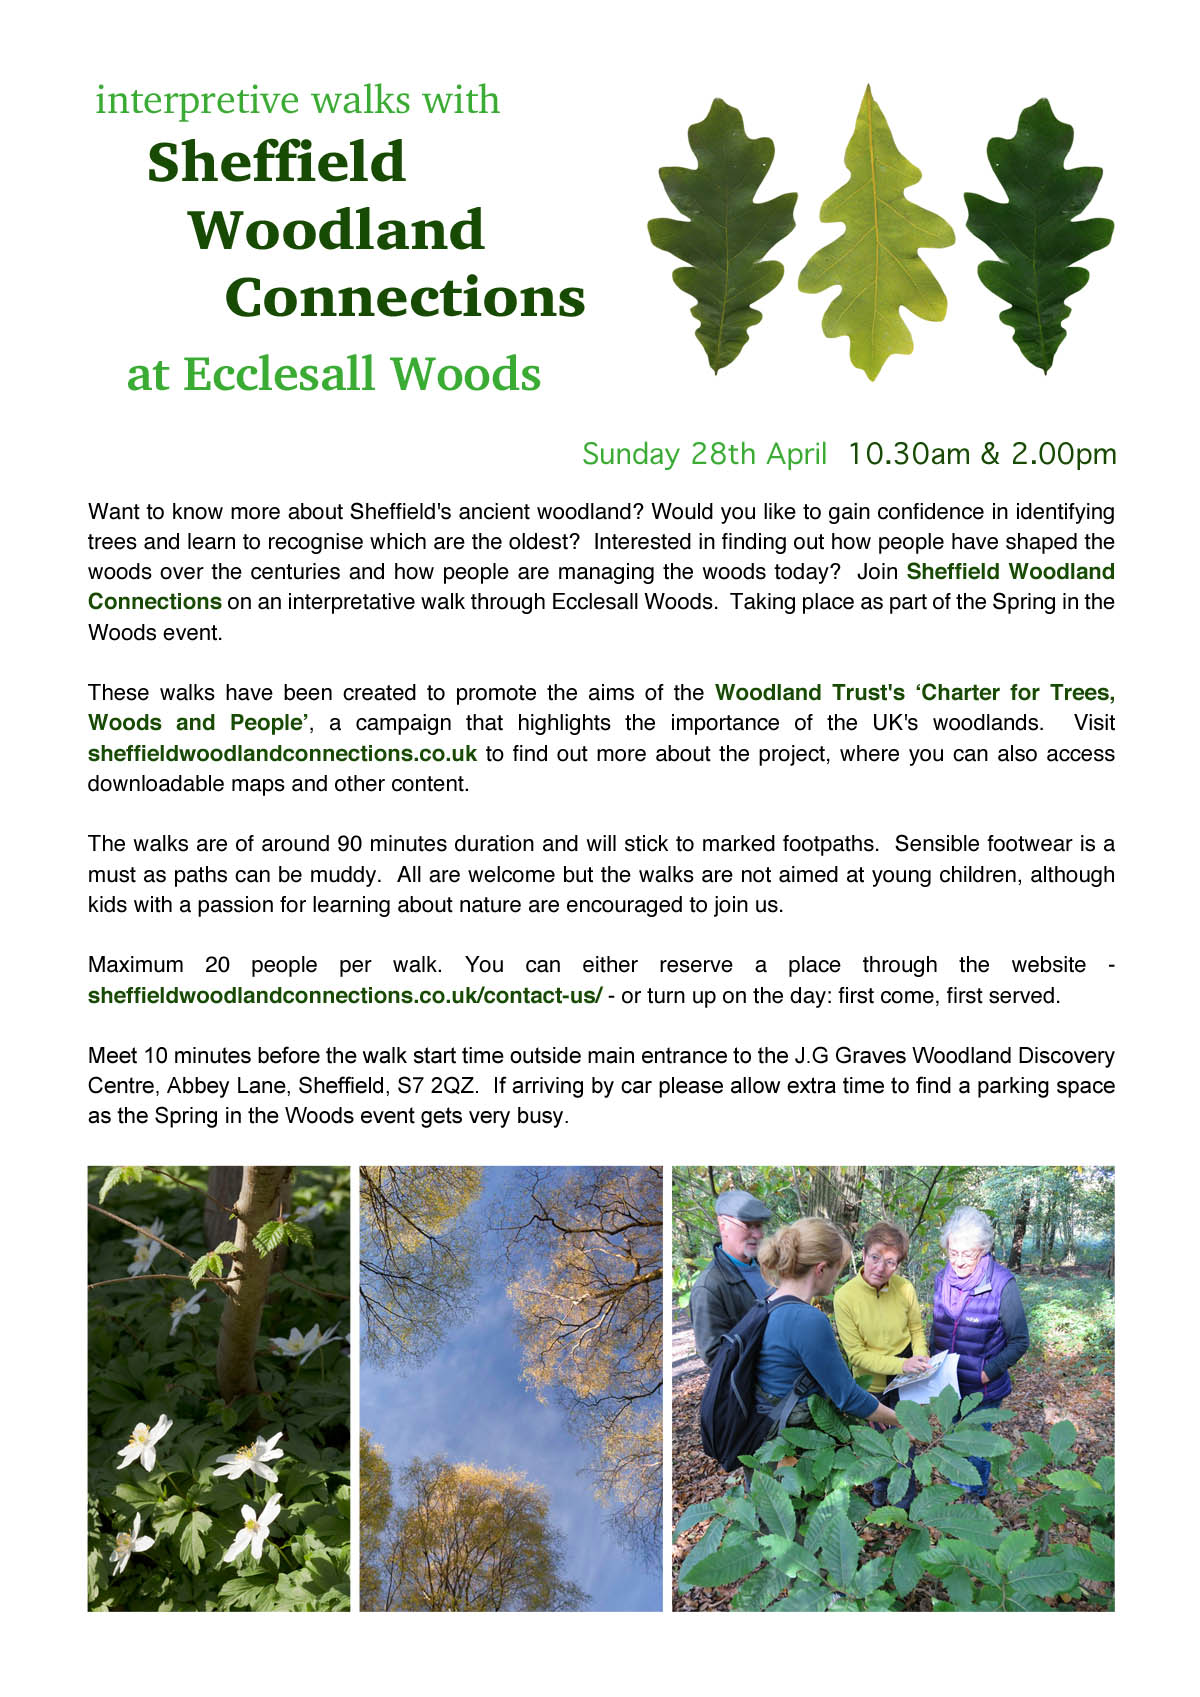 Free walks in Ecclesall Woods on 28th April 2019.